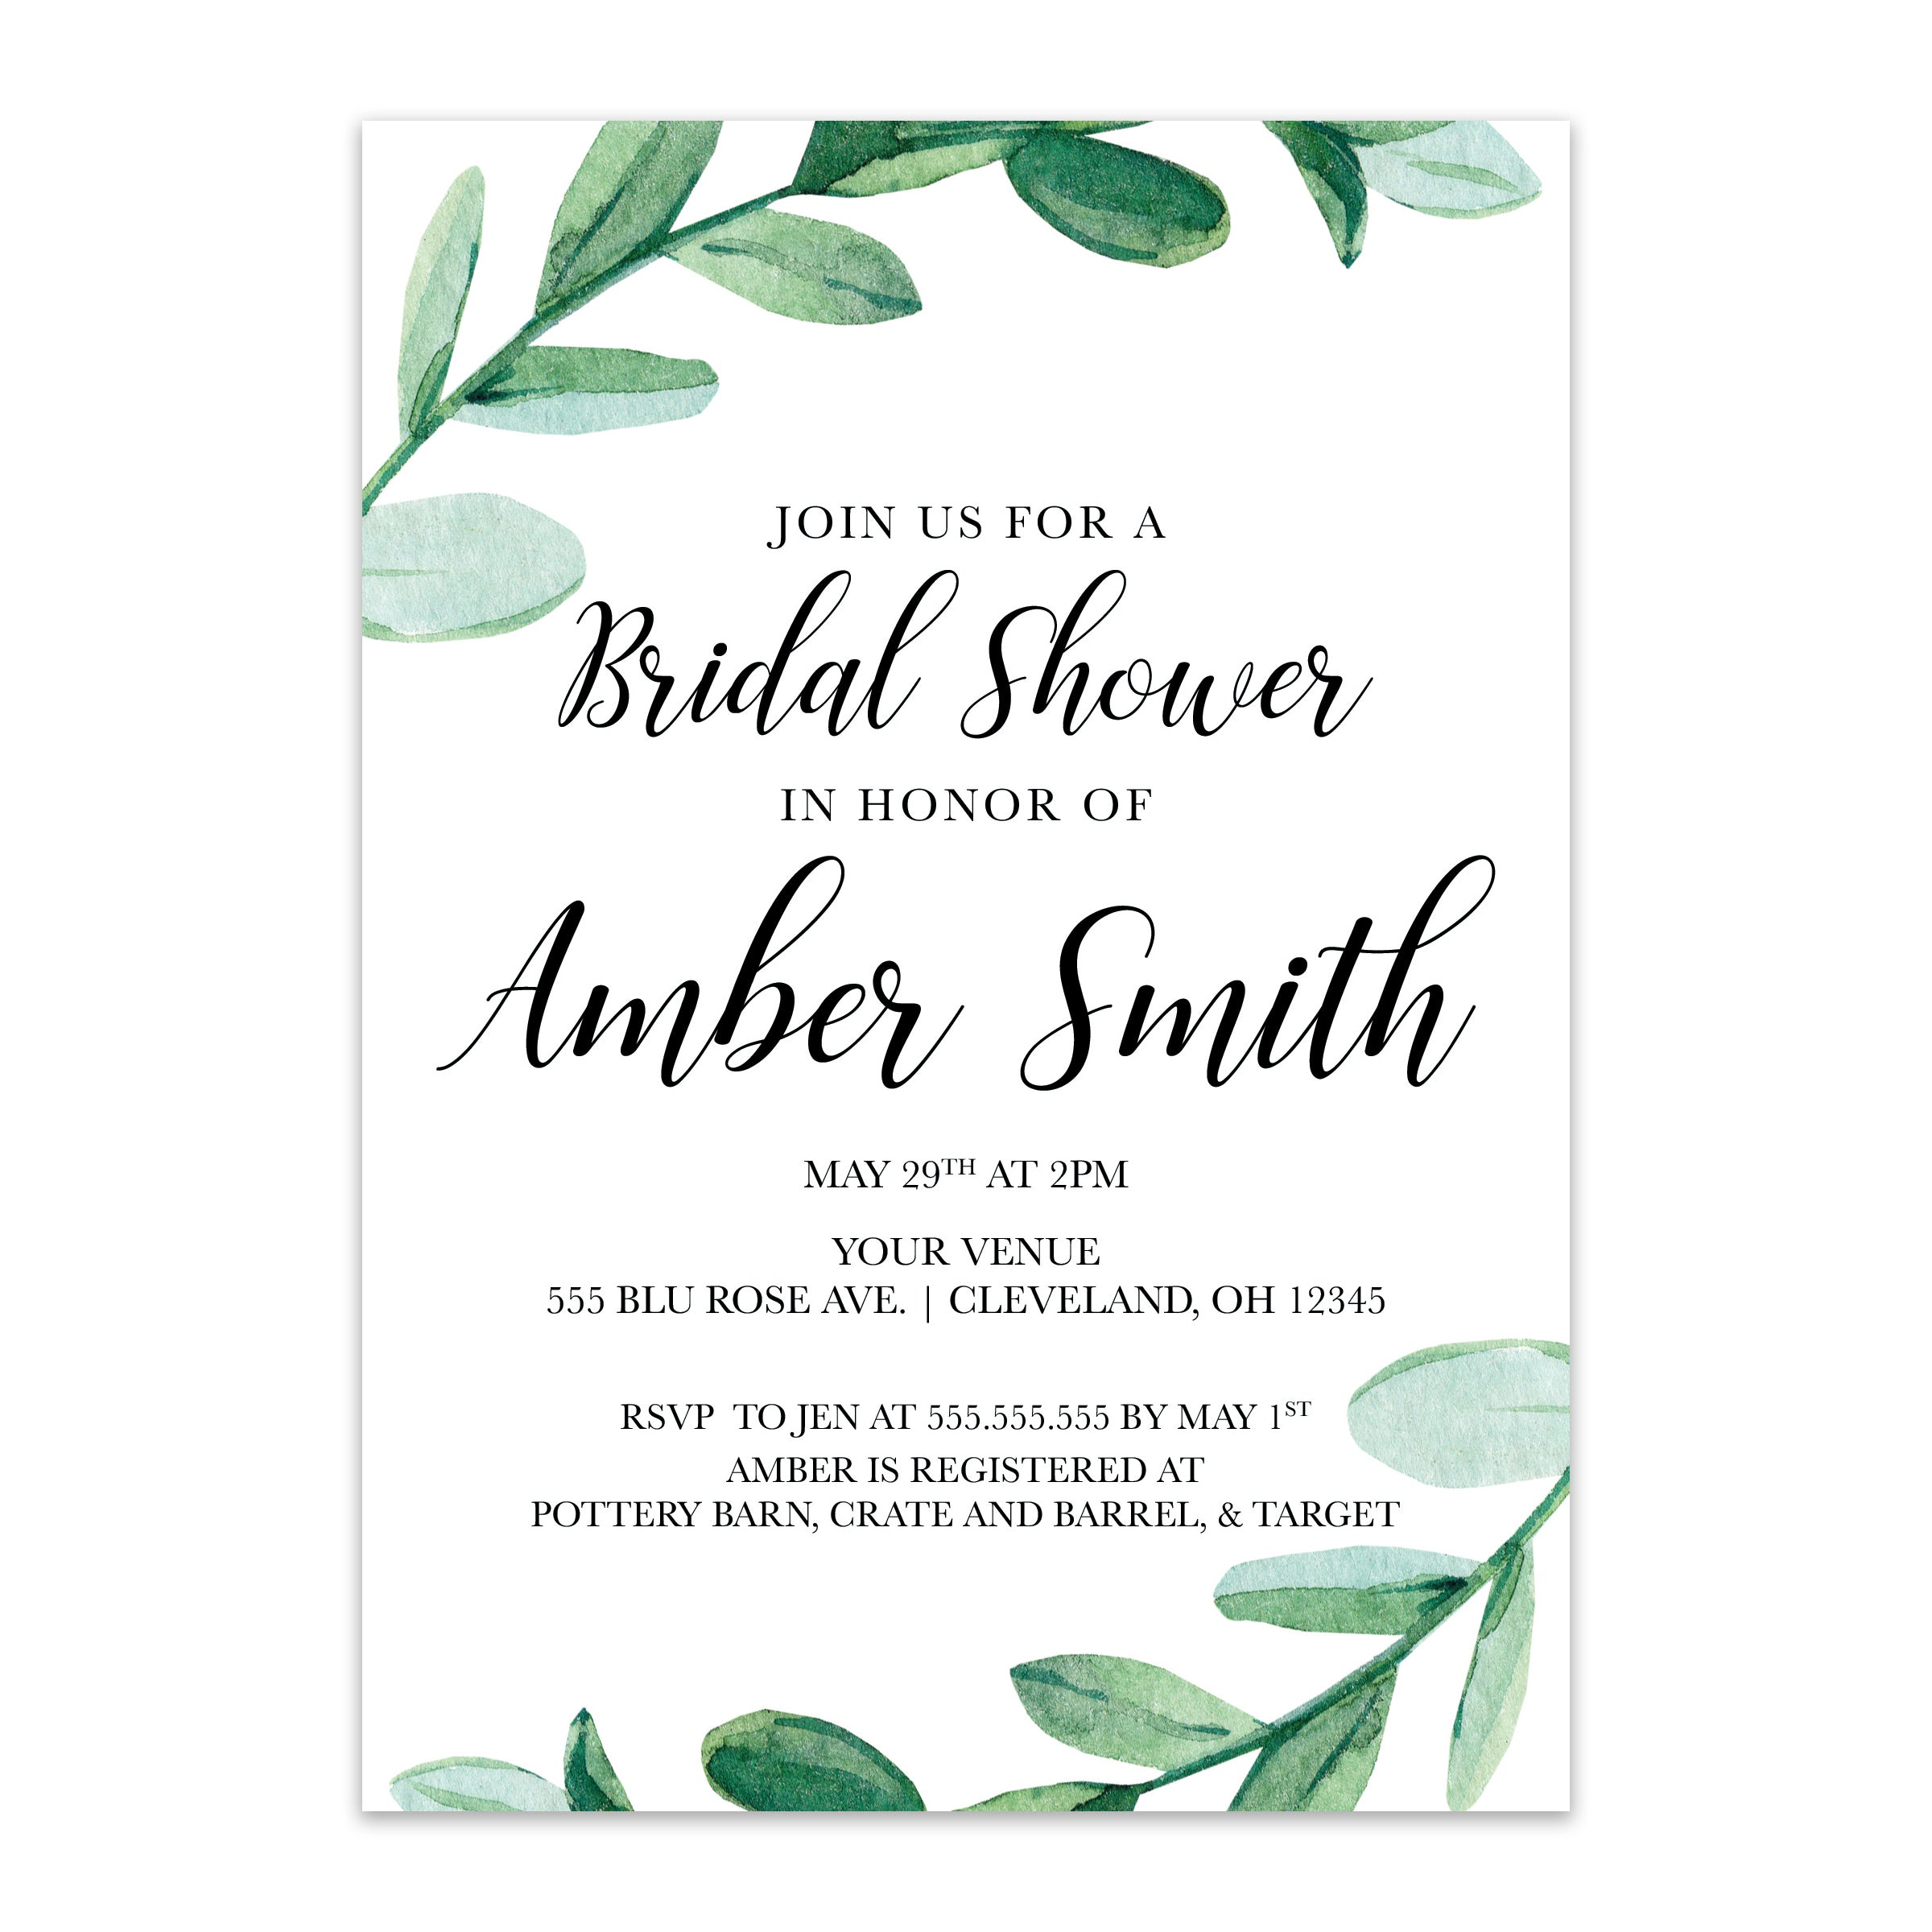 Greenery Bridal Shower Invitation - Blú Rose Designs